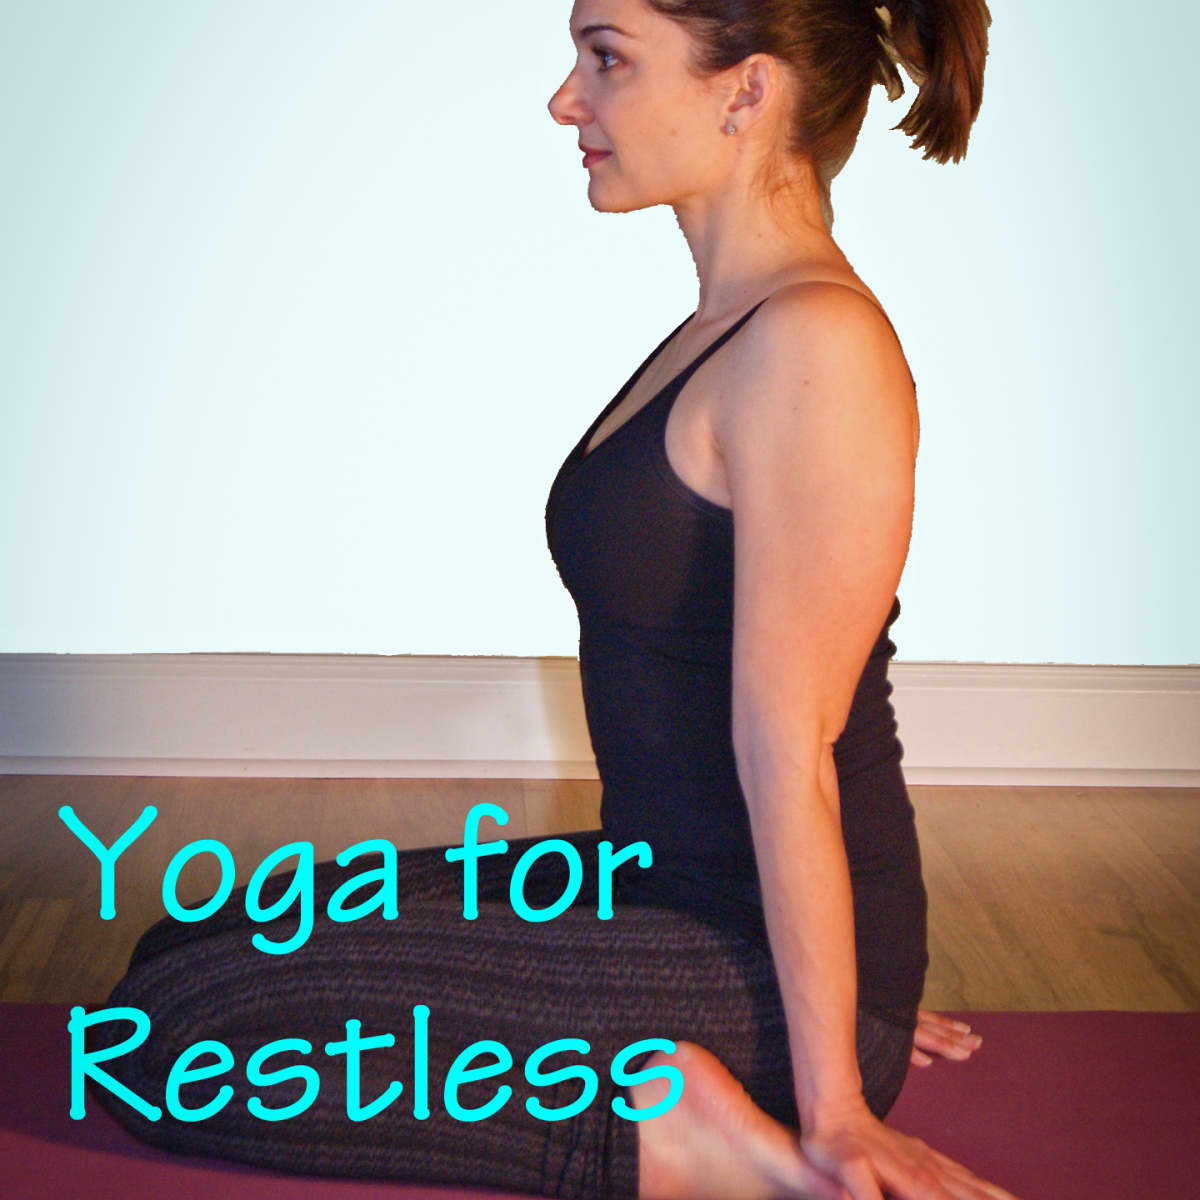 A Simple Yoga Treatment for Restless Legs Syndrome   RemedyGrove